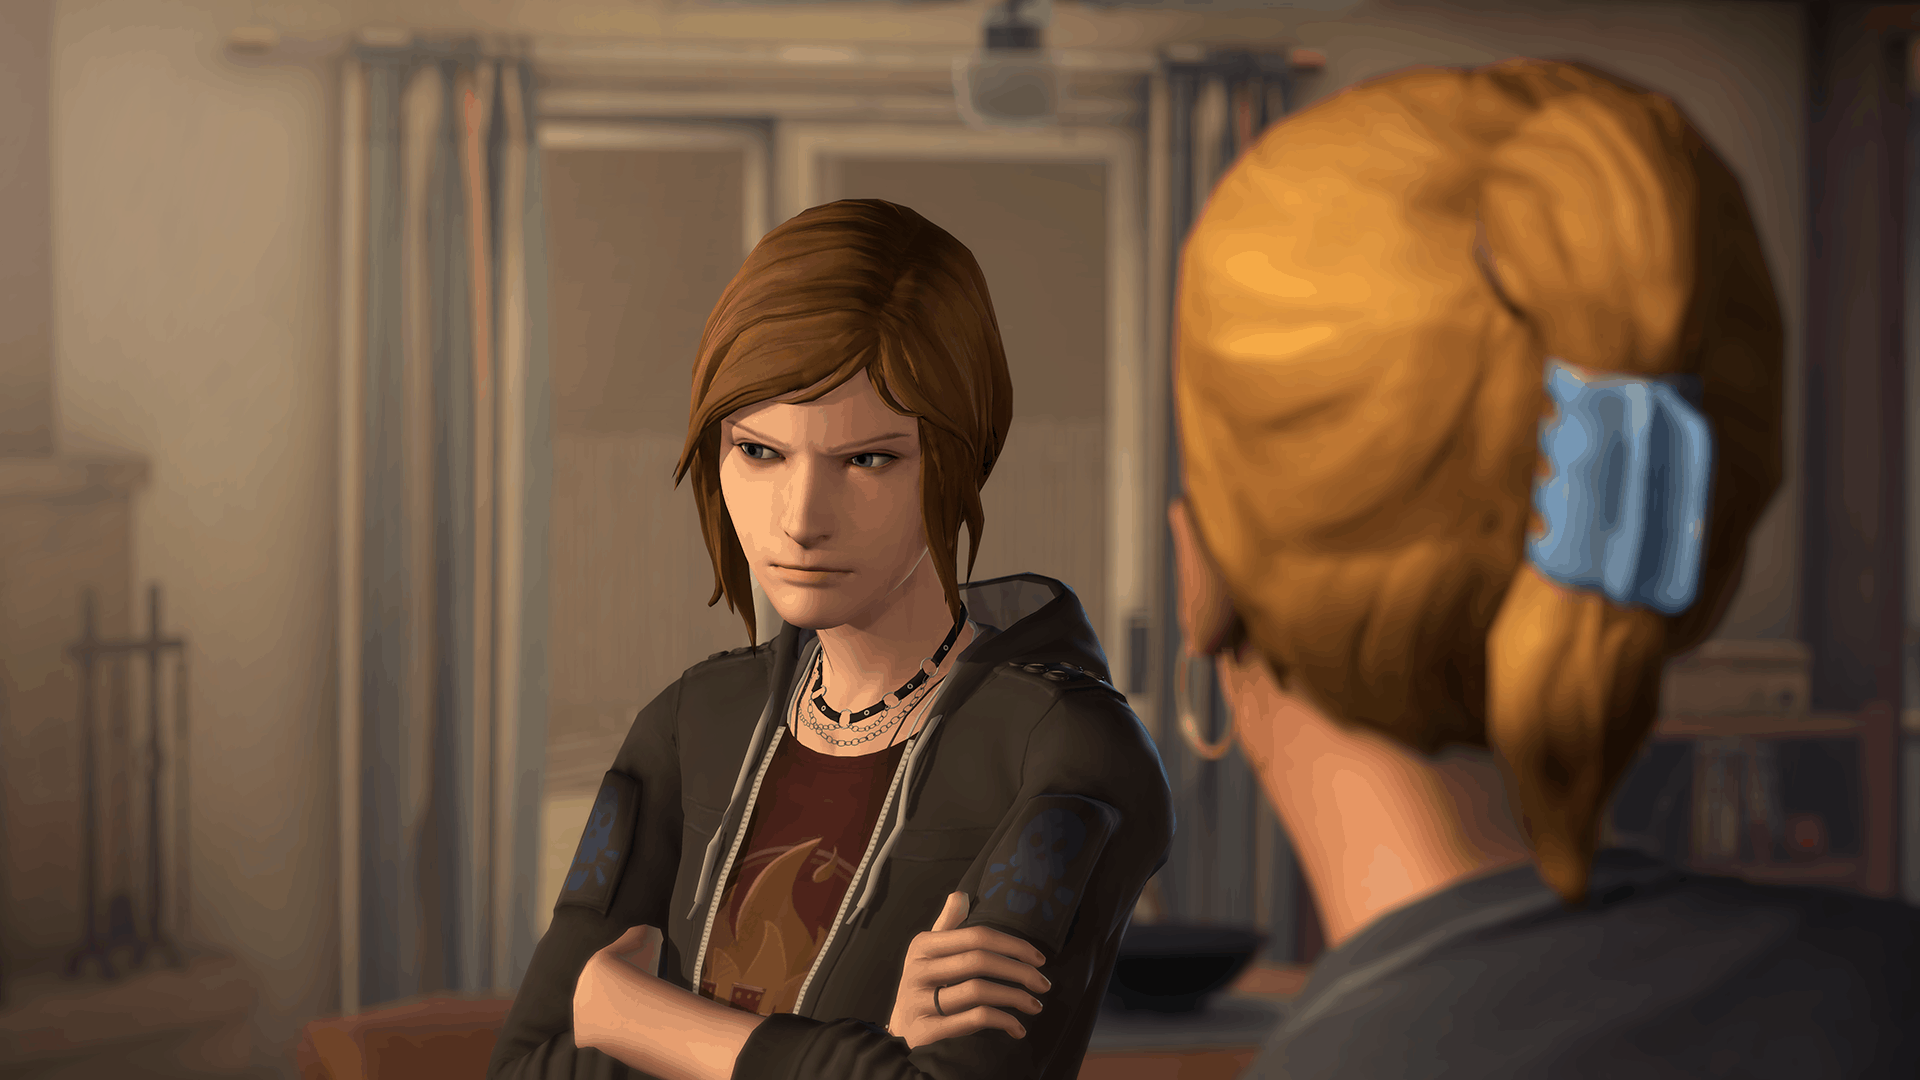 Lis Bts E32017 Screenshot06 1497257266